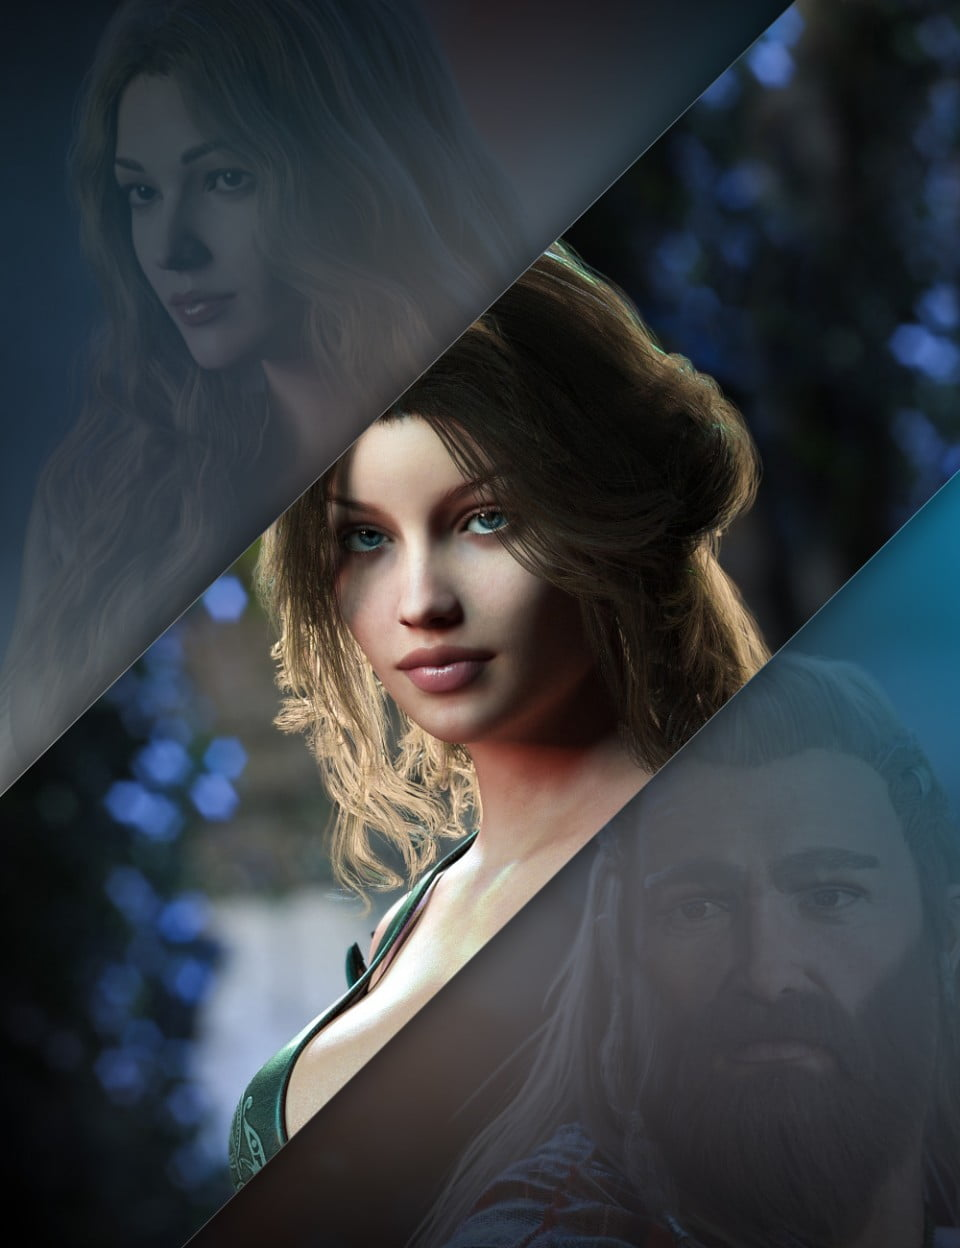 iRadiance – HDR Mesh Lights Volume 2 for Iray